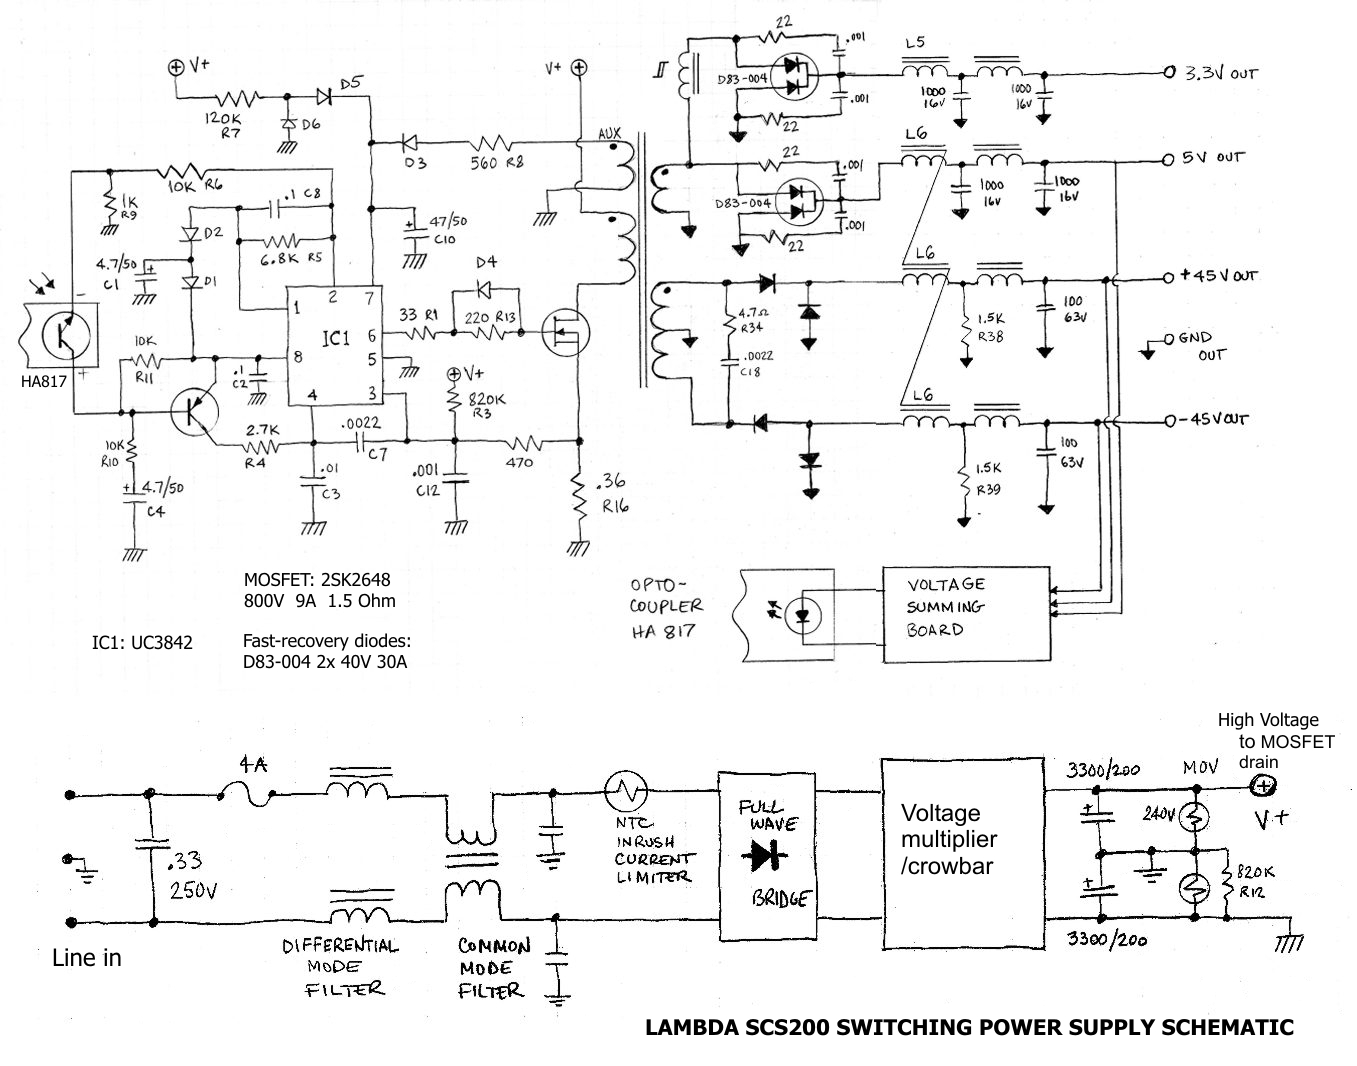 120 volt ignition coil driver circuit diagram 120 free engine image for user manual